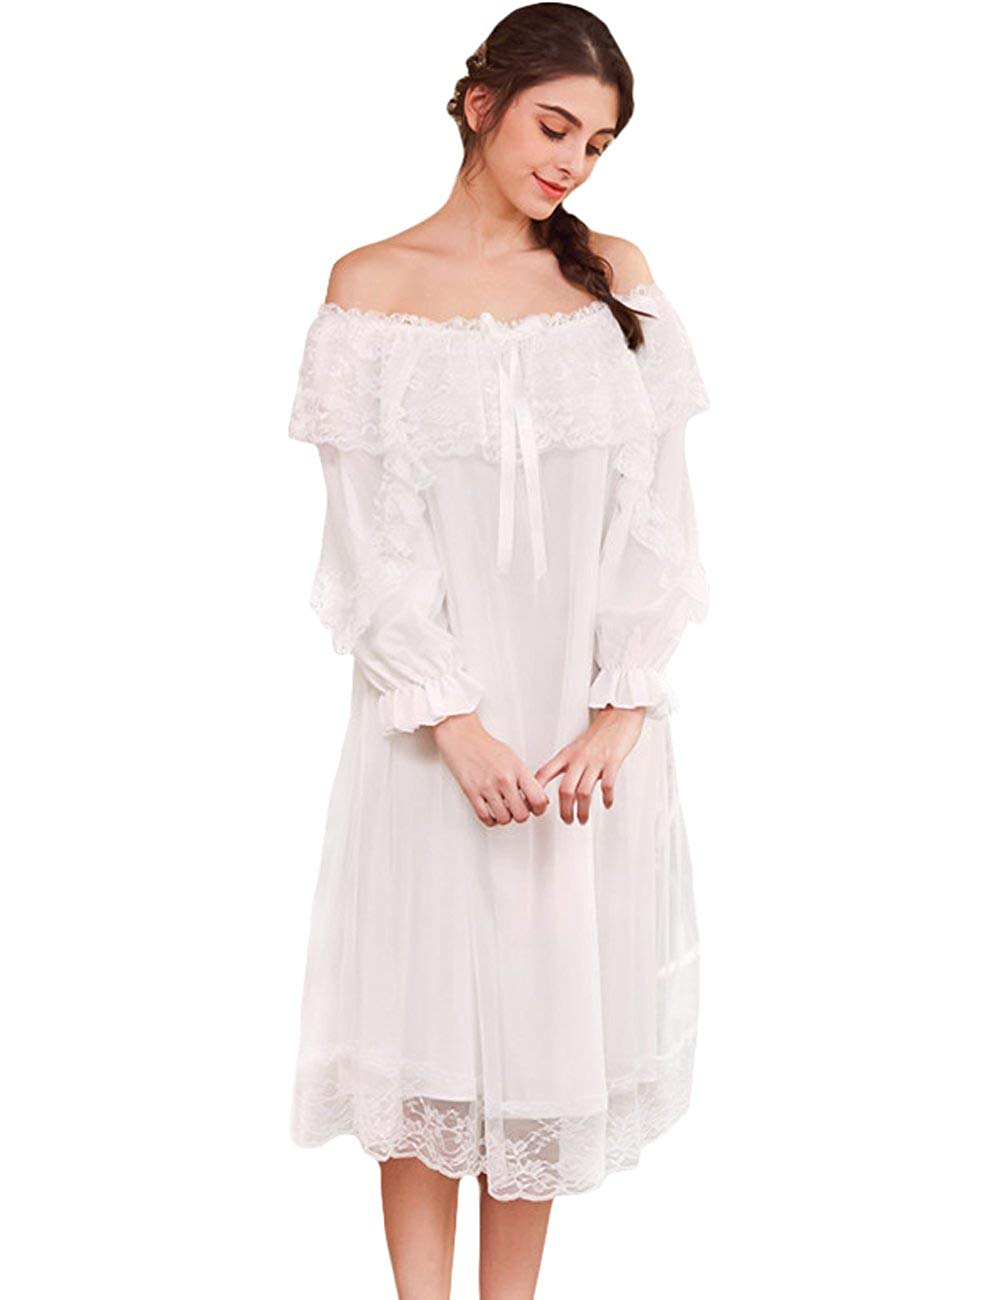 19cf11133e Get Quotations · AIKOSHA Womens Victorian Style 3 4 Flare Sleeve Off  Shoulder Two Layers Lace Cotton Nightdress